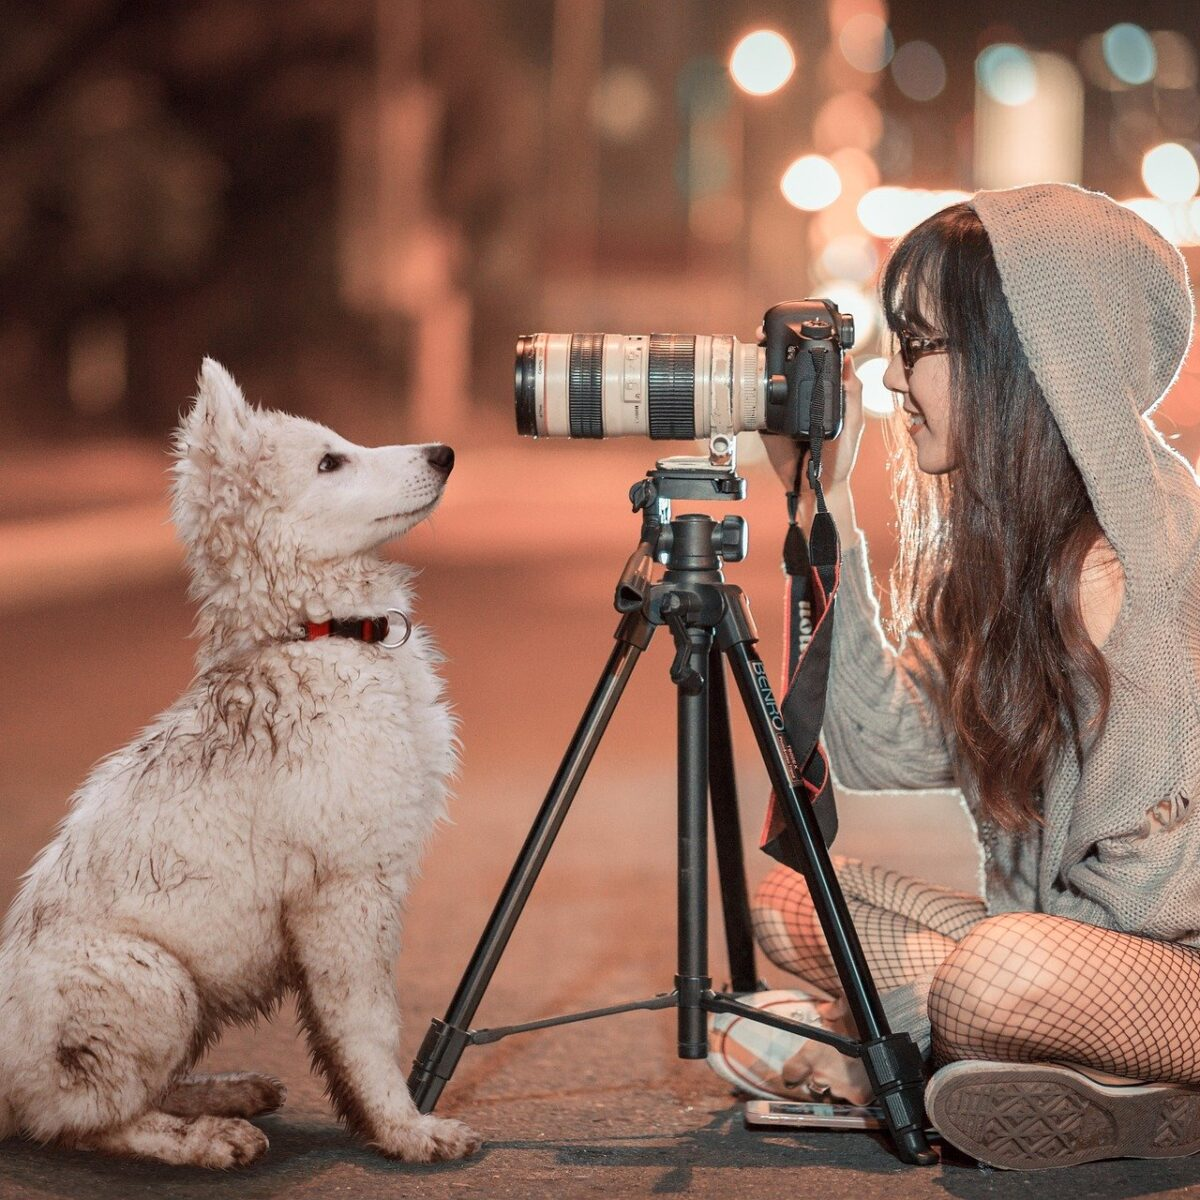 girl taking photo of dog on street